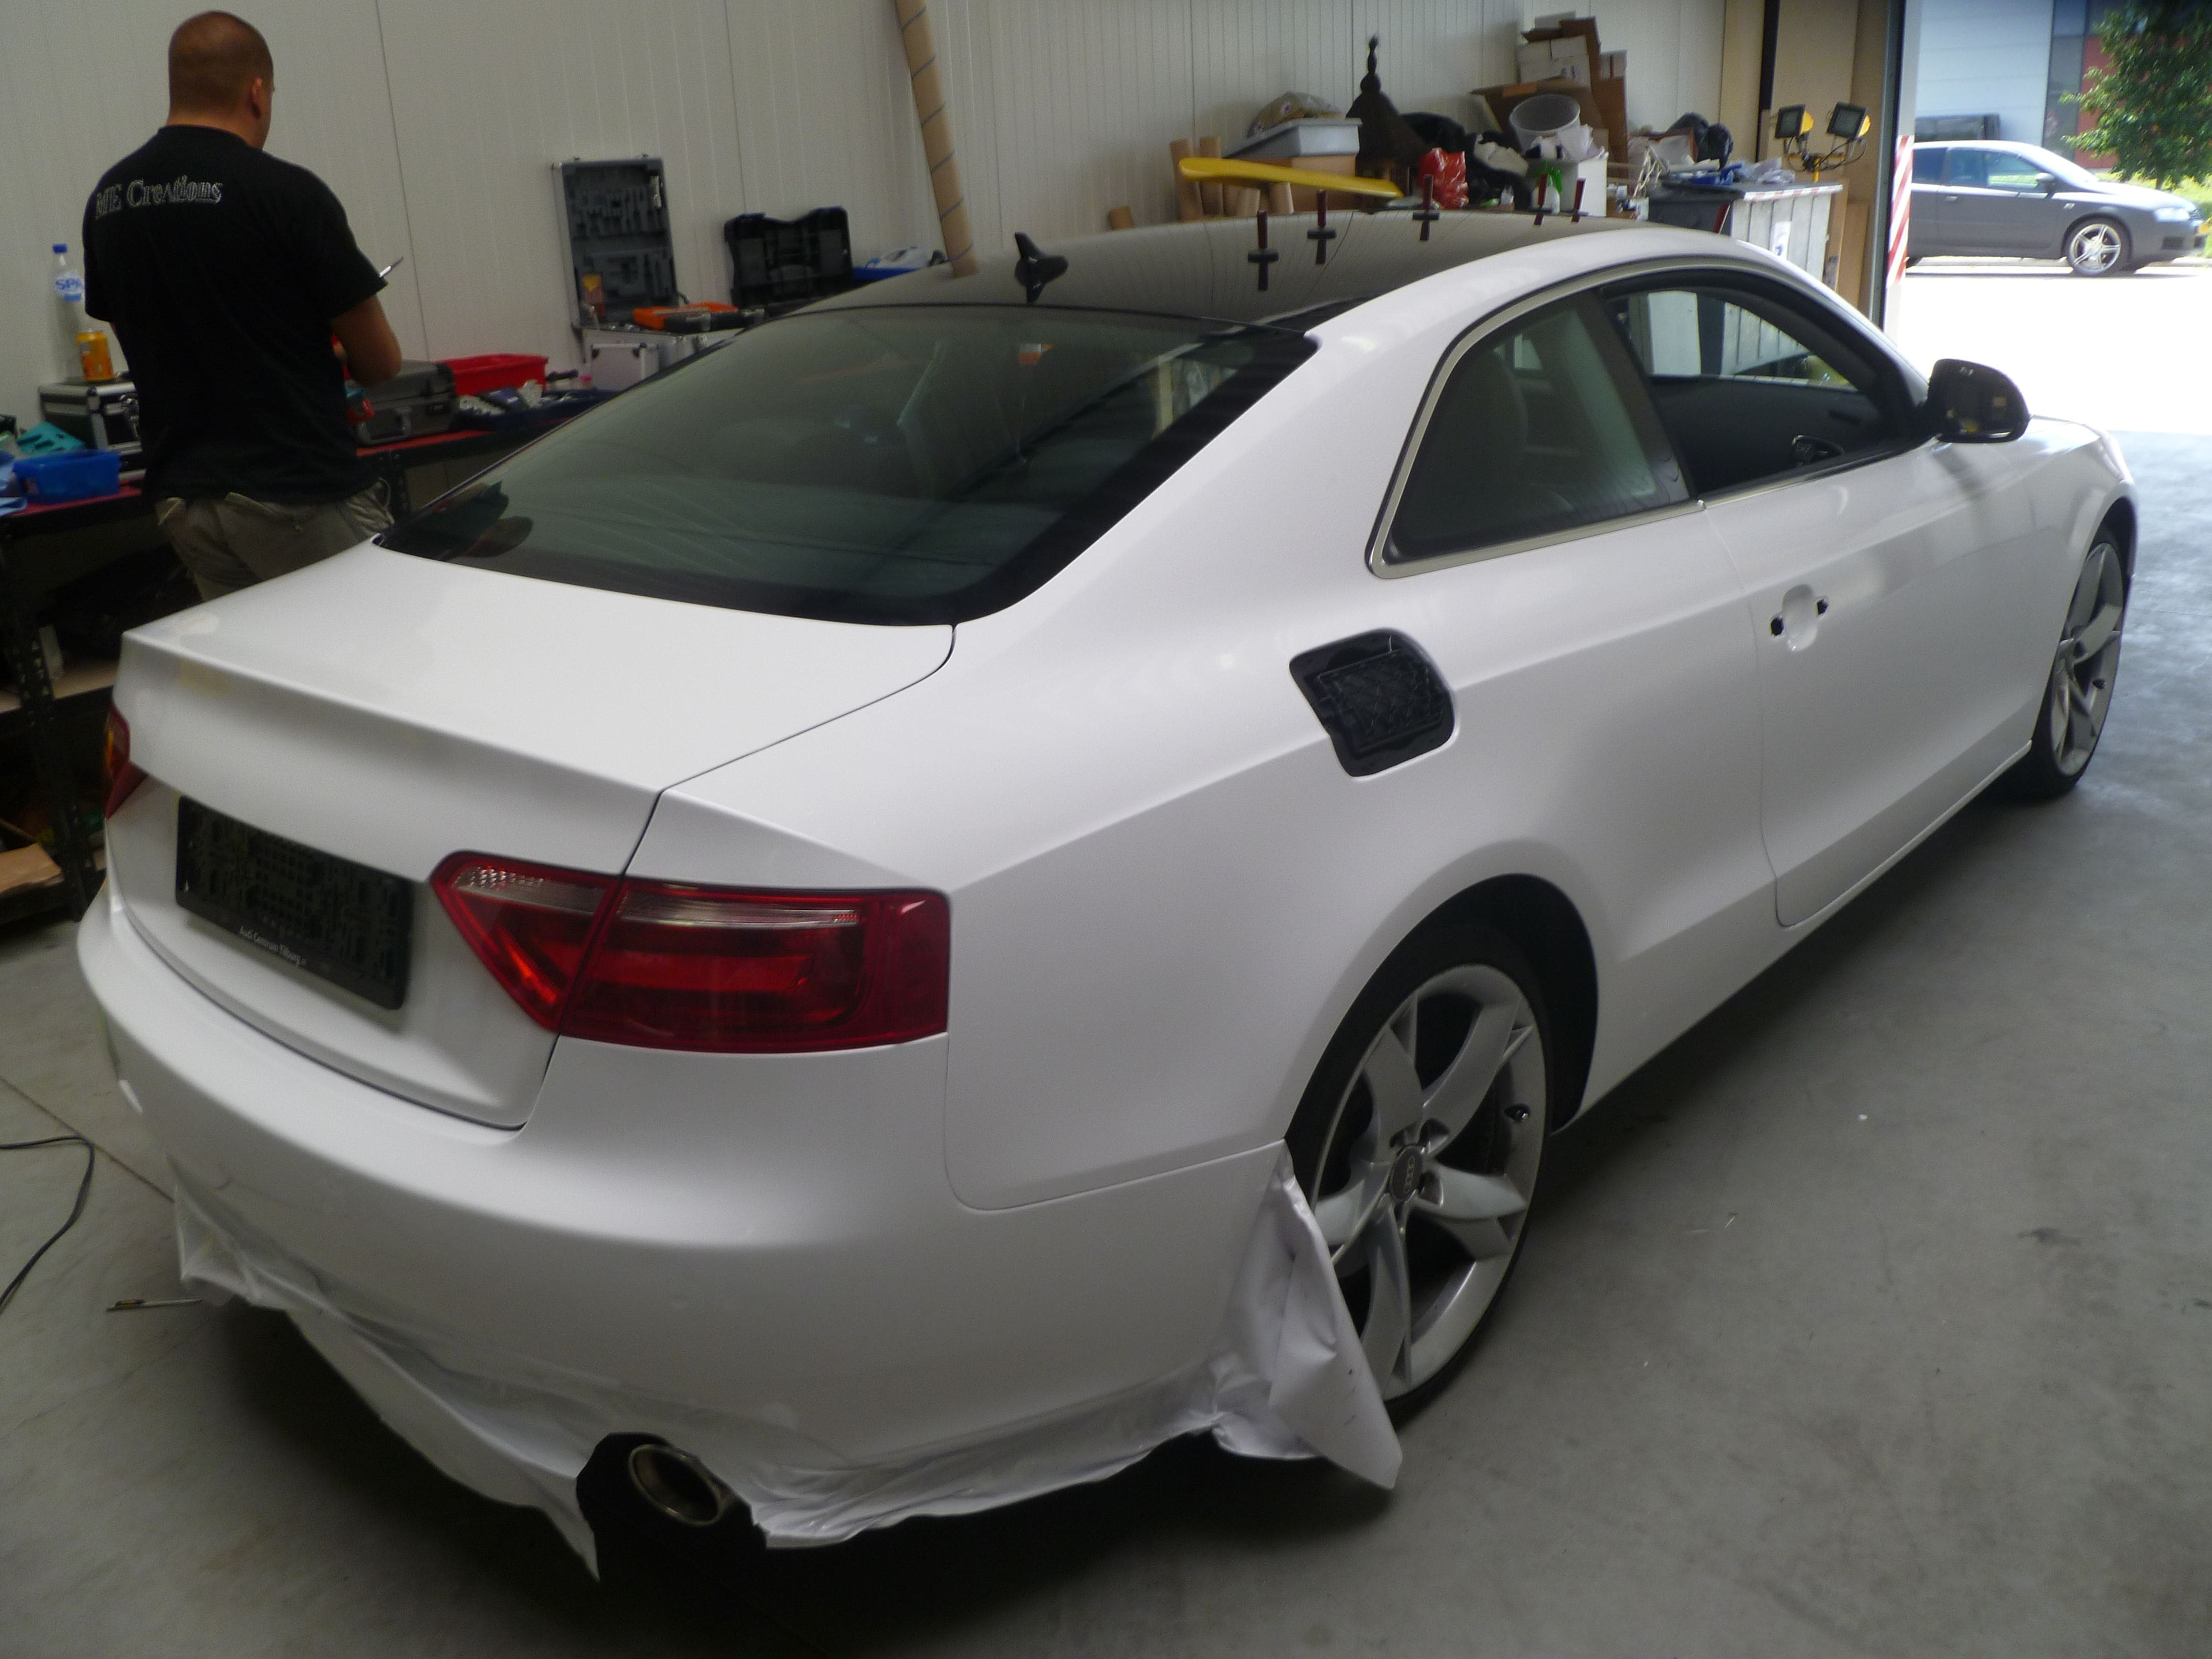 Audi A5 coupe met Metallic Witte Wrap, Carwrapping door Wrapmyride.nu Foto-nr:4722, ©2020